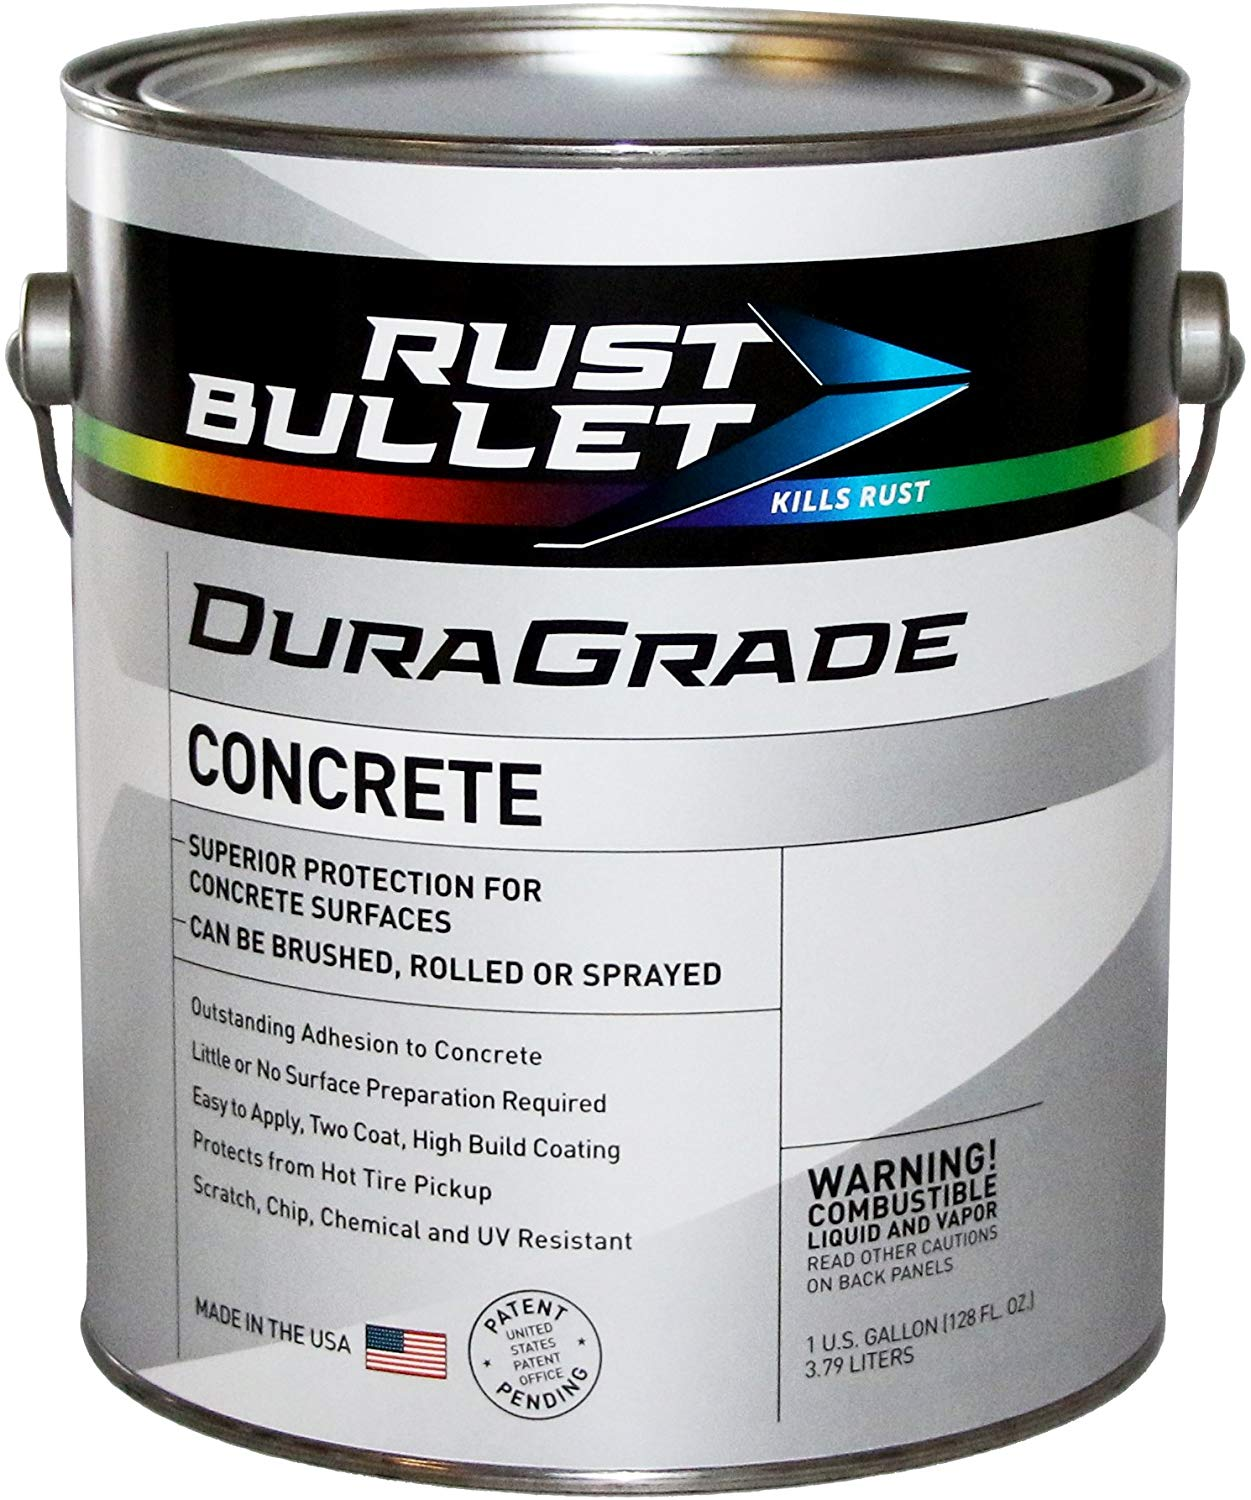 Rust Bullet Duragrade Concrete review